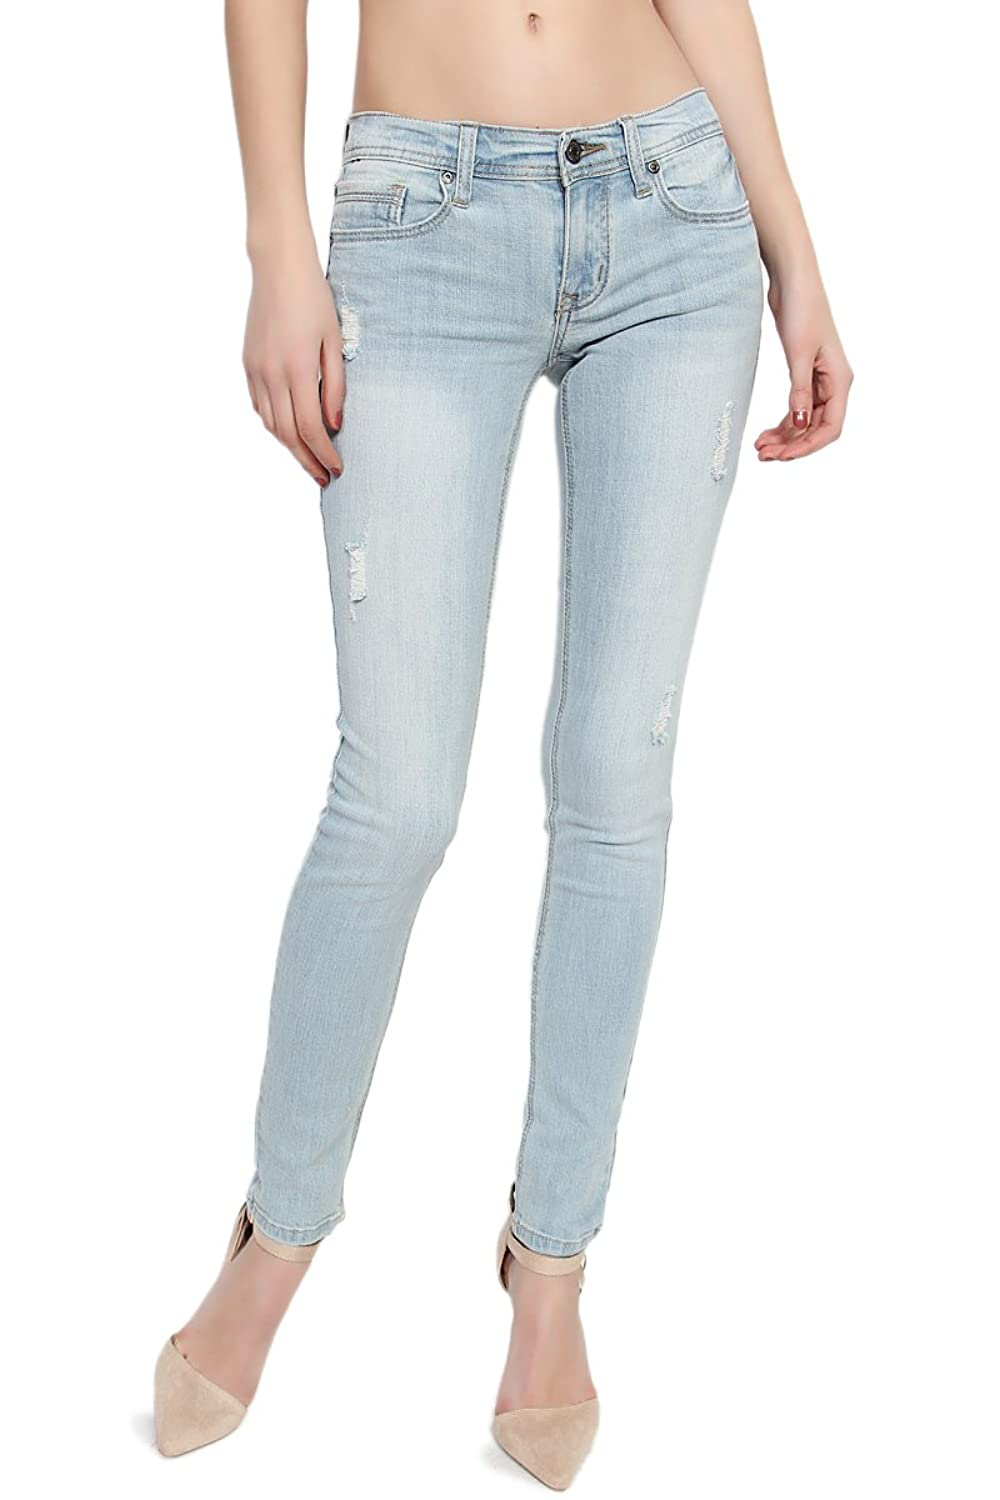 TheMogan Women's 0~3XL Distressed Destroyed Ripped Medium Washed Skinny Jeans